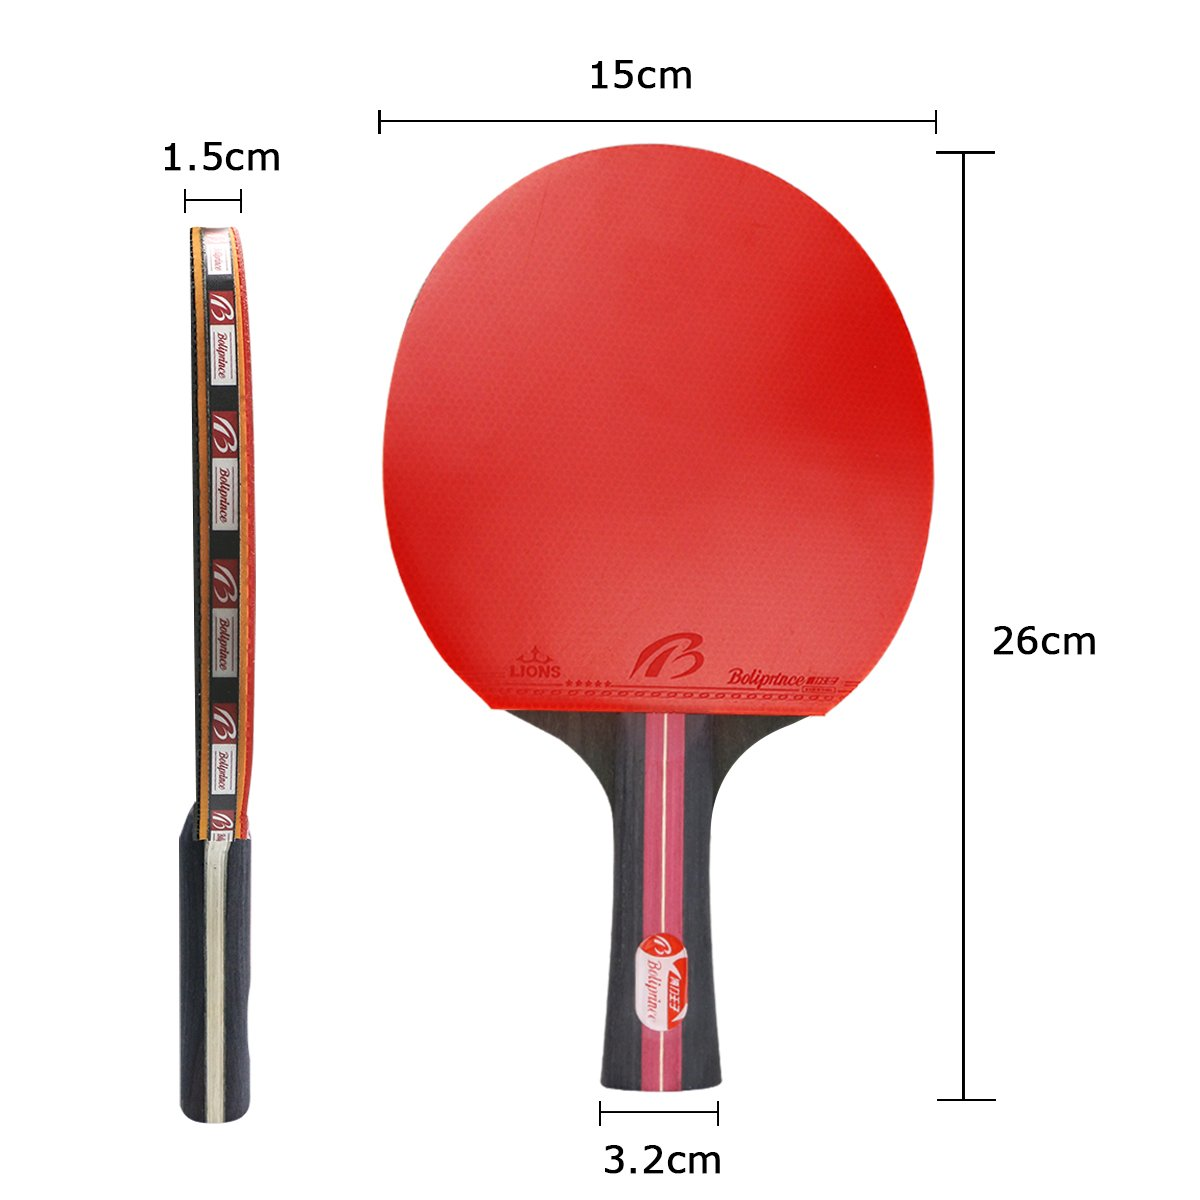 Weeygo Professional Table Tennis Bats Table Tennis Set Rubber Ping Pong Paddles For Indoor Outdoor Training Games With Carry Bag Shakehand